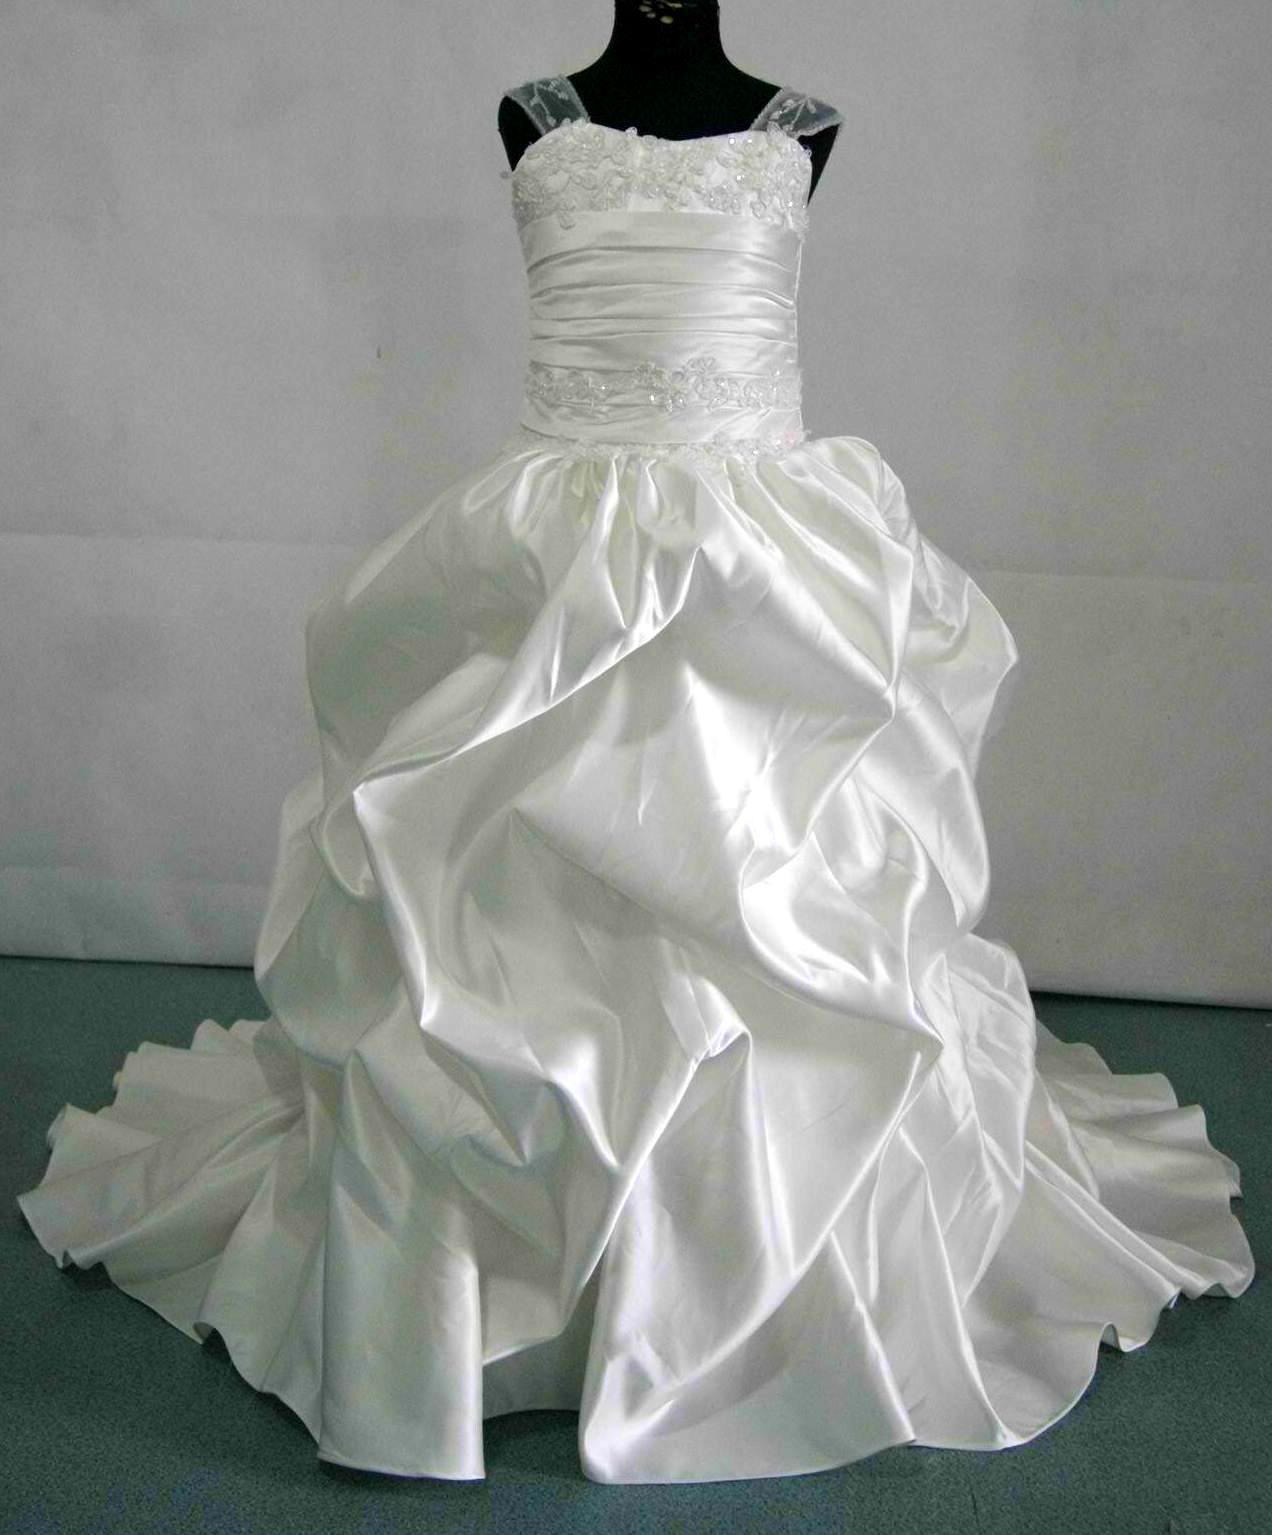 infant size wedding gown